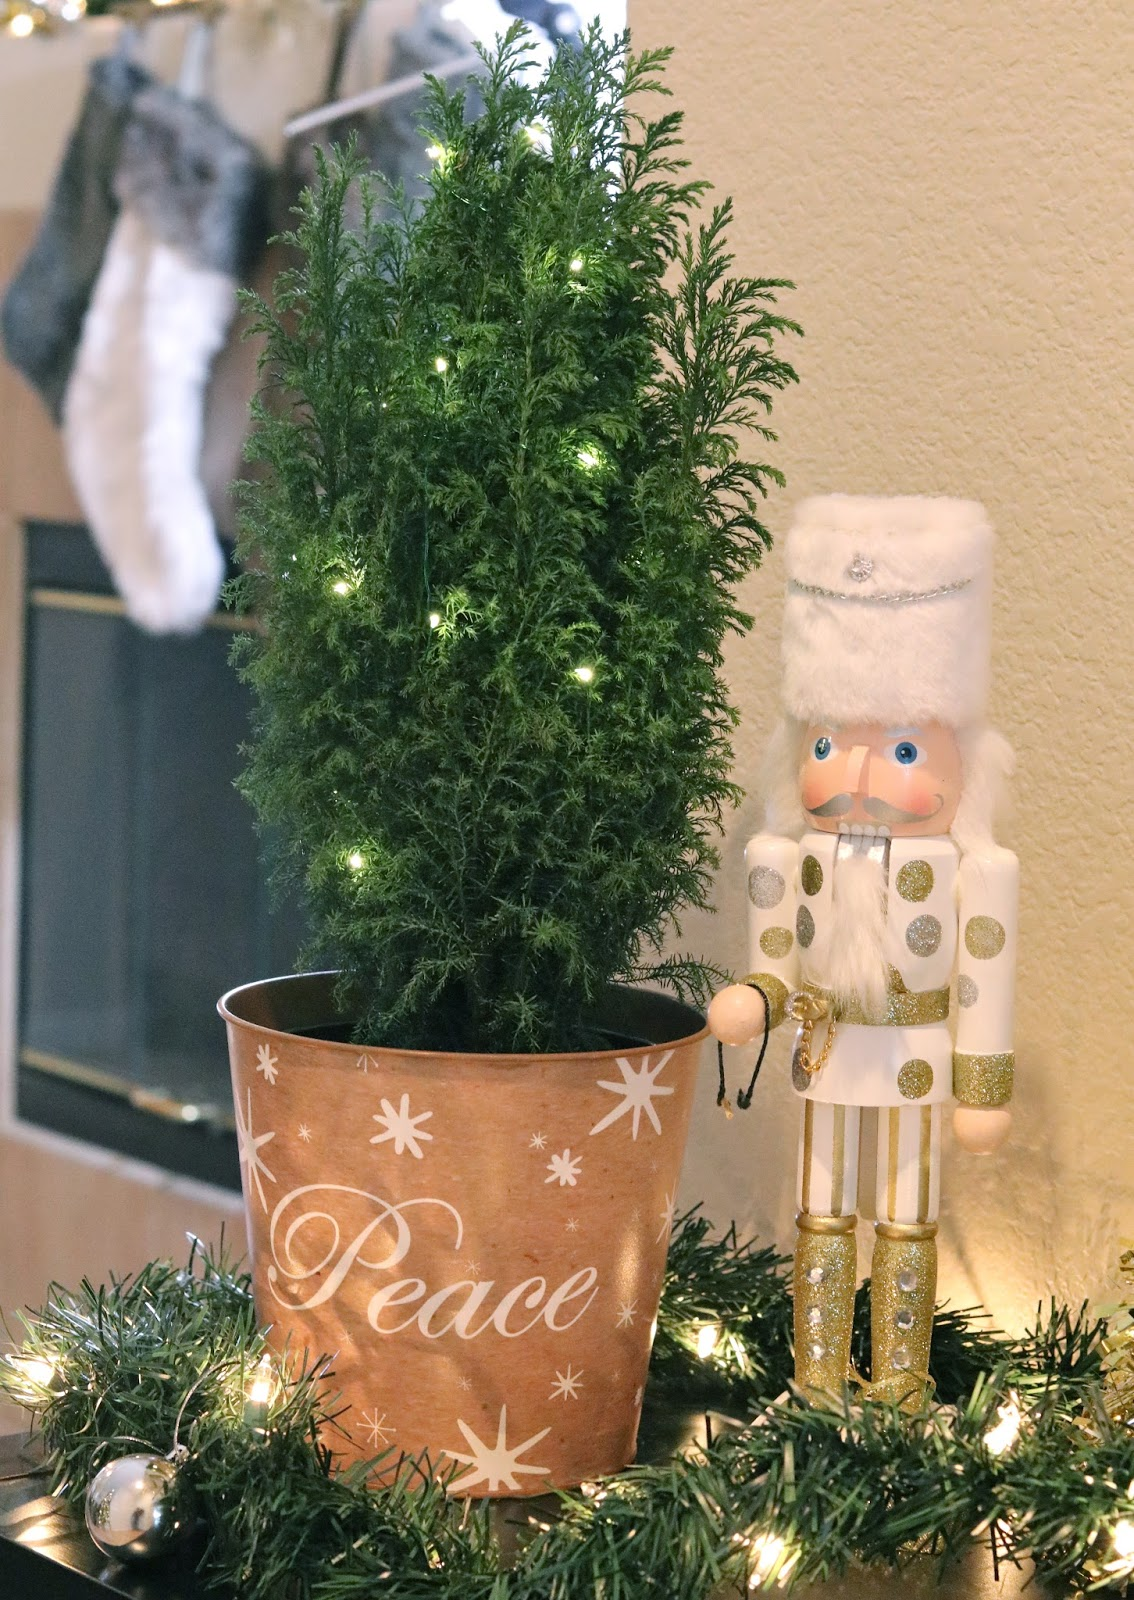 Proflowers mini tree, gold and silver nutcracker